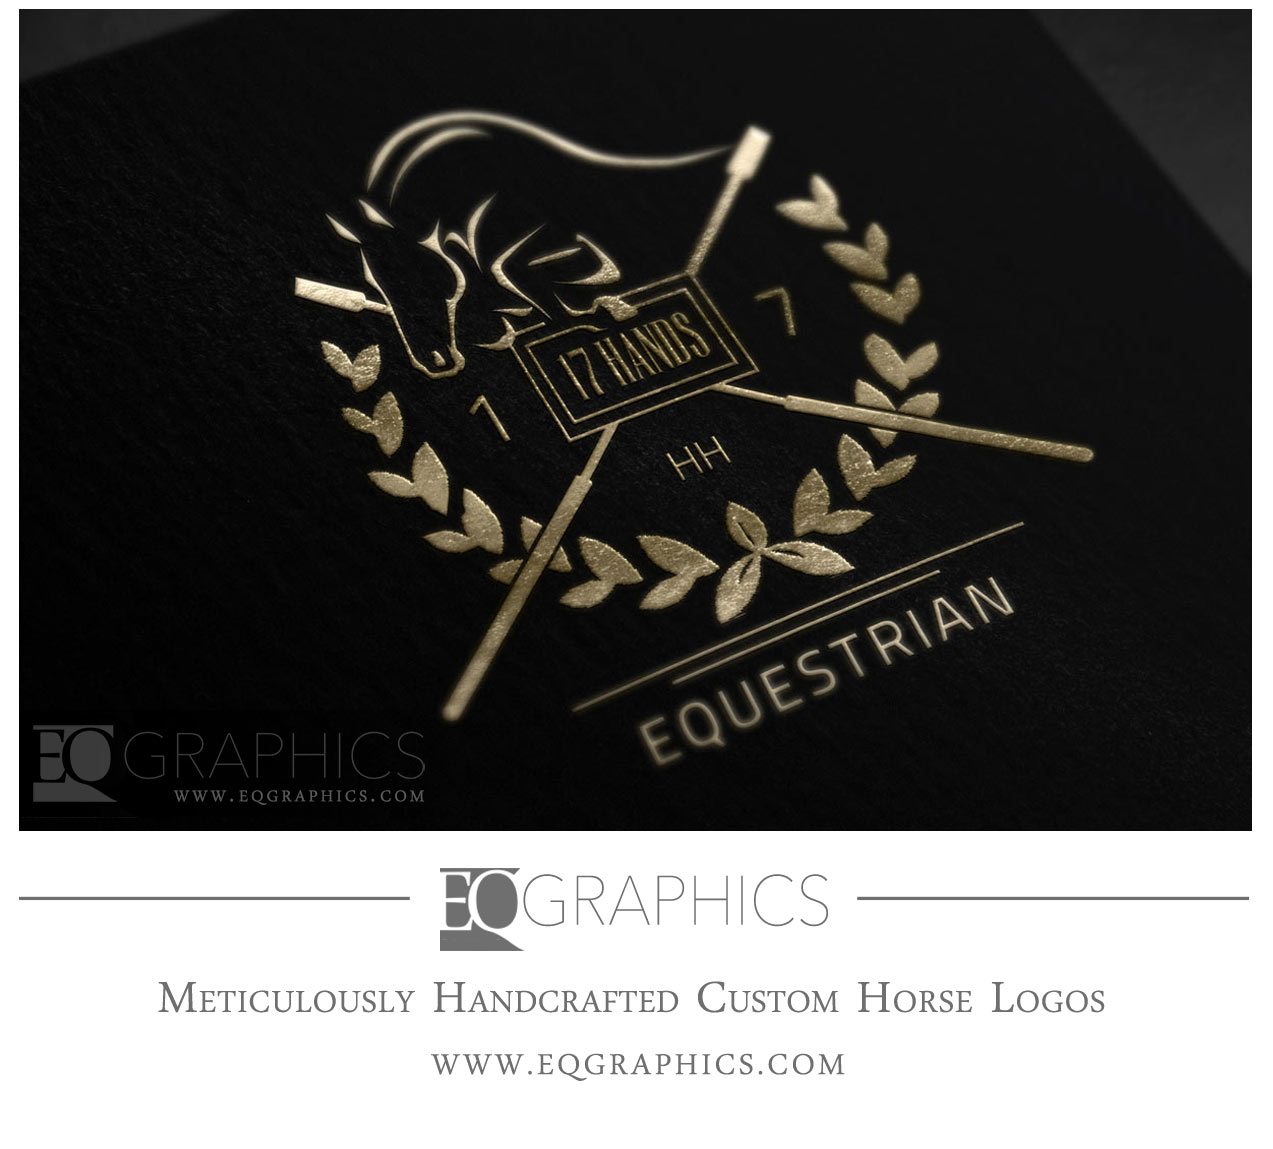 17HH Equestrian Custom Jumper Logo by Showjumping Horse Logo Designer EQ Graphics